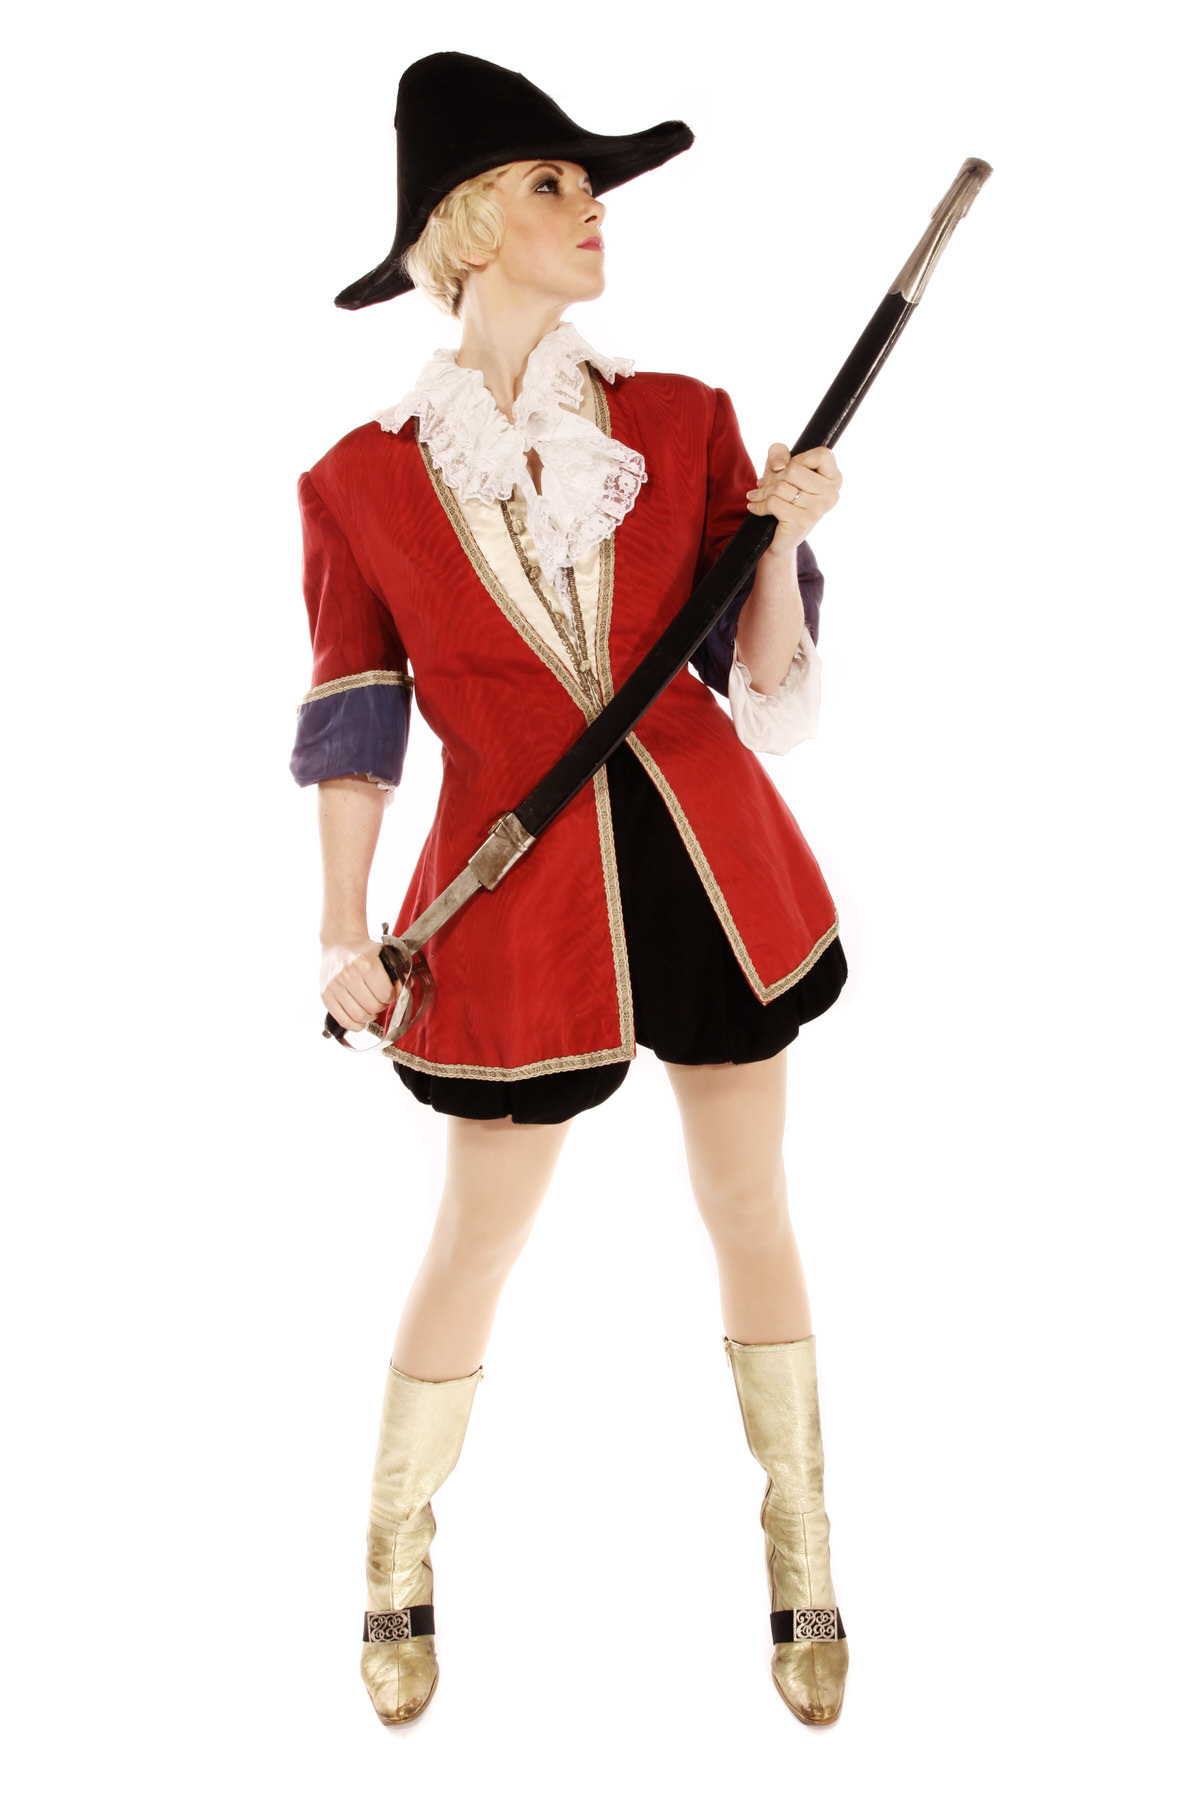 PRINCIPLE BOY PANTO PIRATE COSTUME W GOLD BOOTS